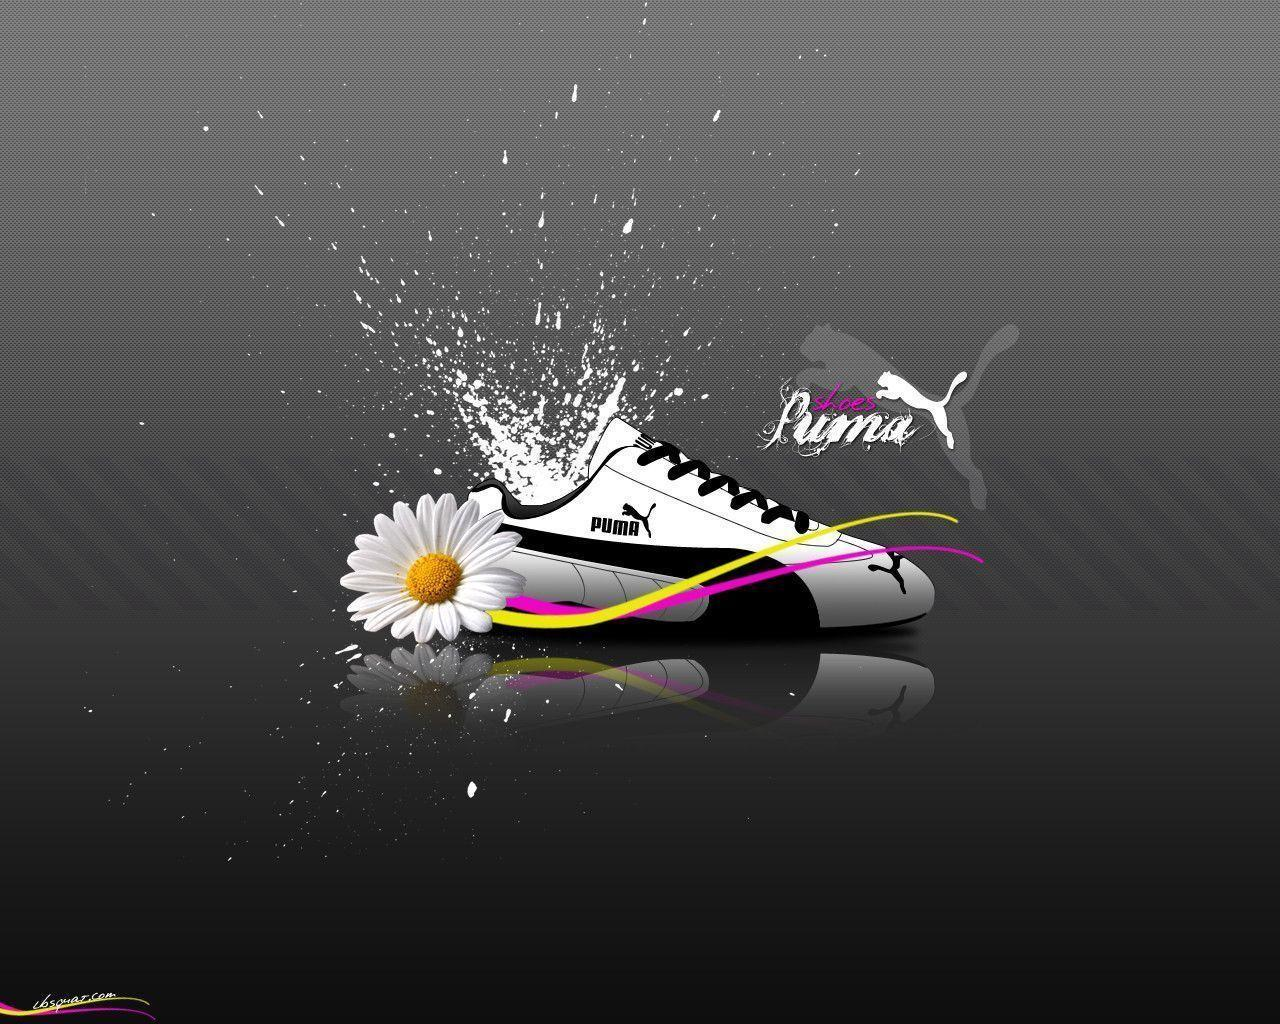 Pin Puma Wallpapers on Pinterest